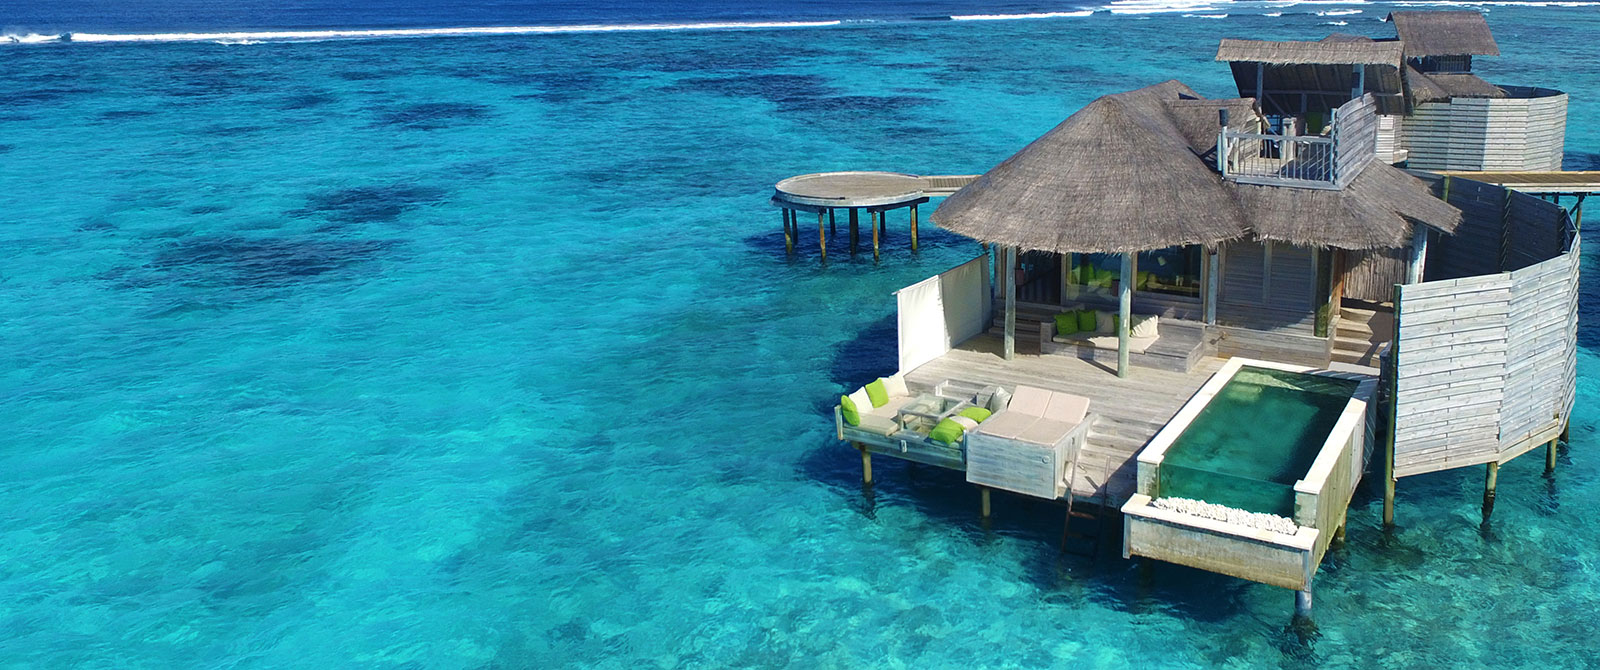 Six Senses Laamu Villa - Trip to Maldives: Overwater Villa Vacation